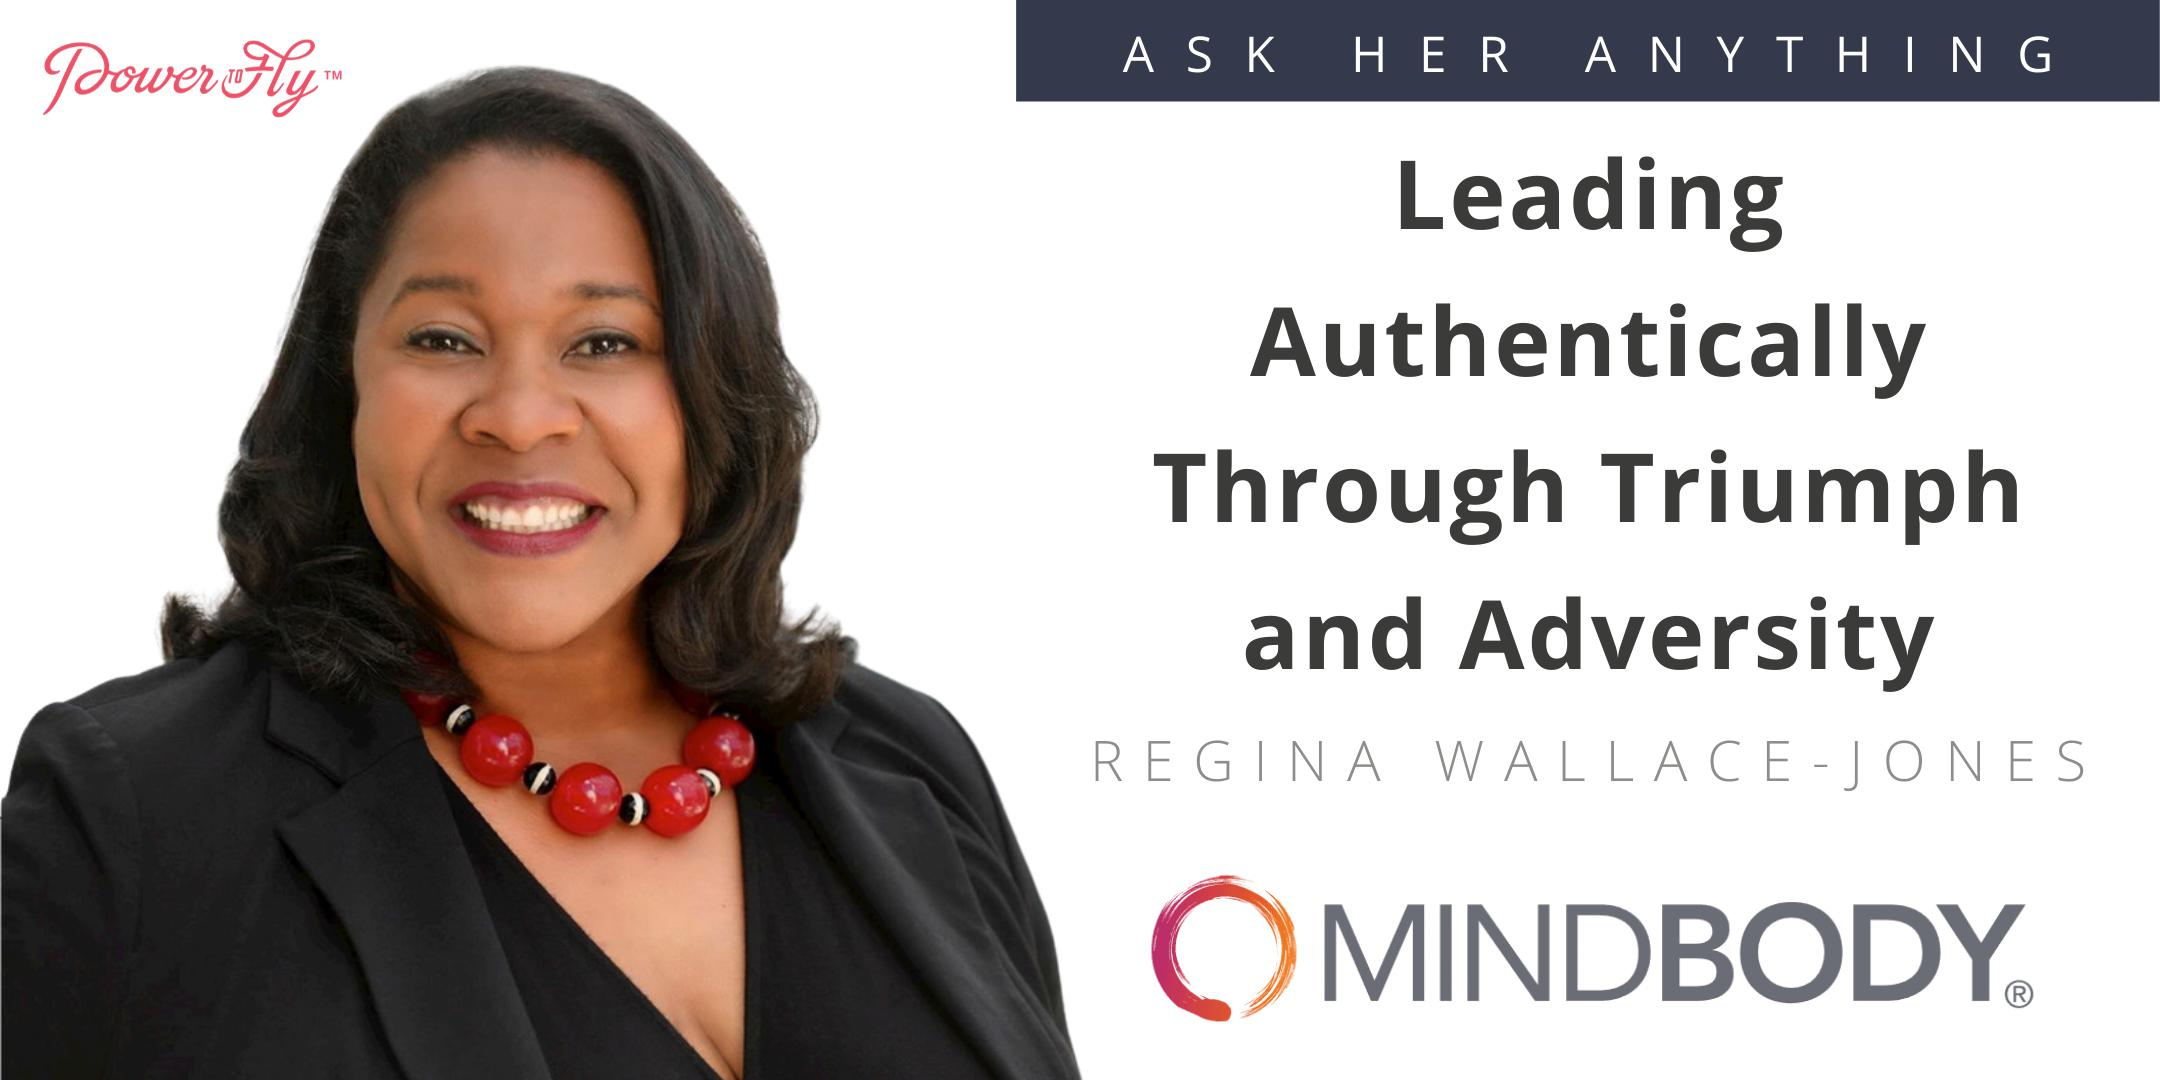 Leading Authentically Through Triumph and Adversity